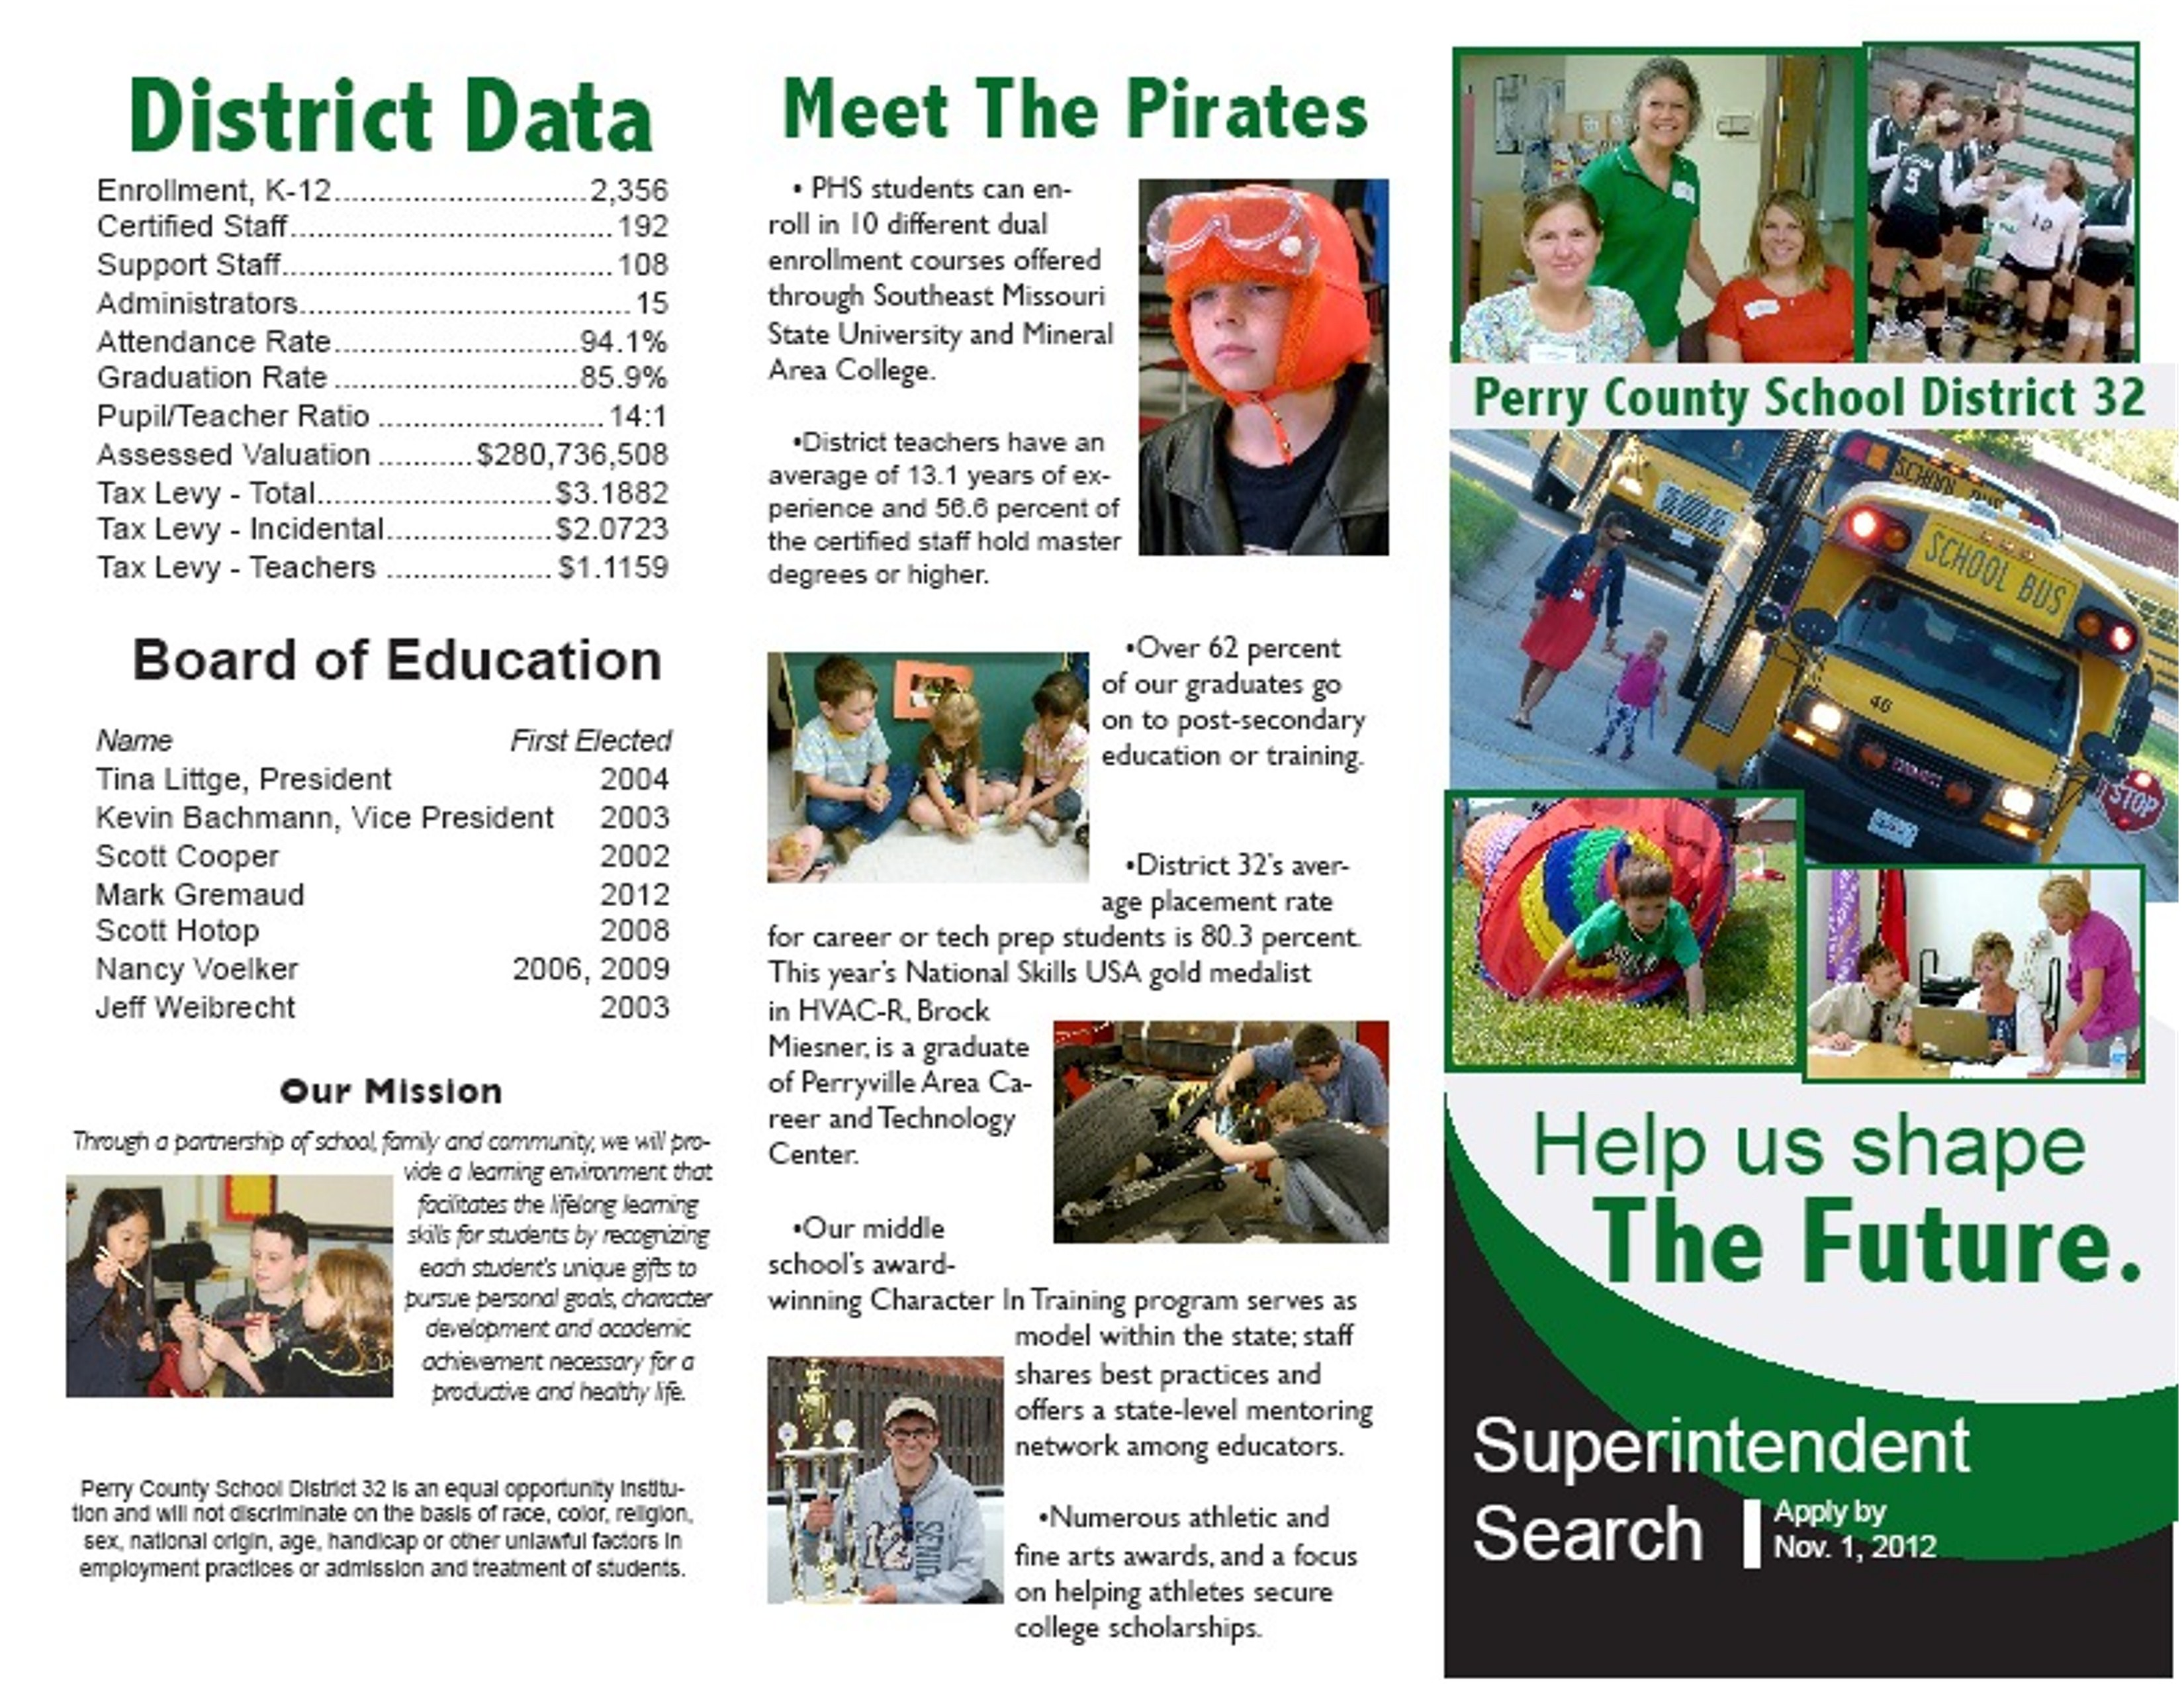 Missouri Association of Rural Education - Perry County